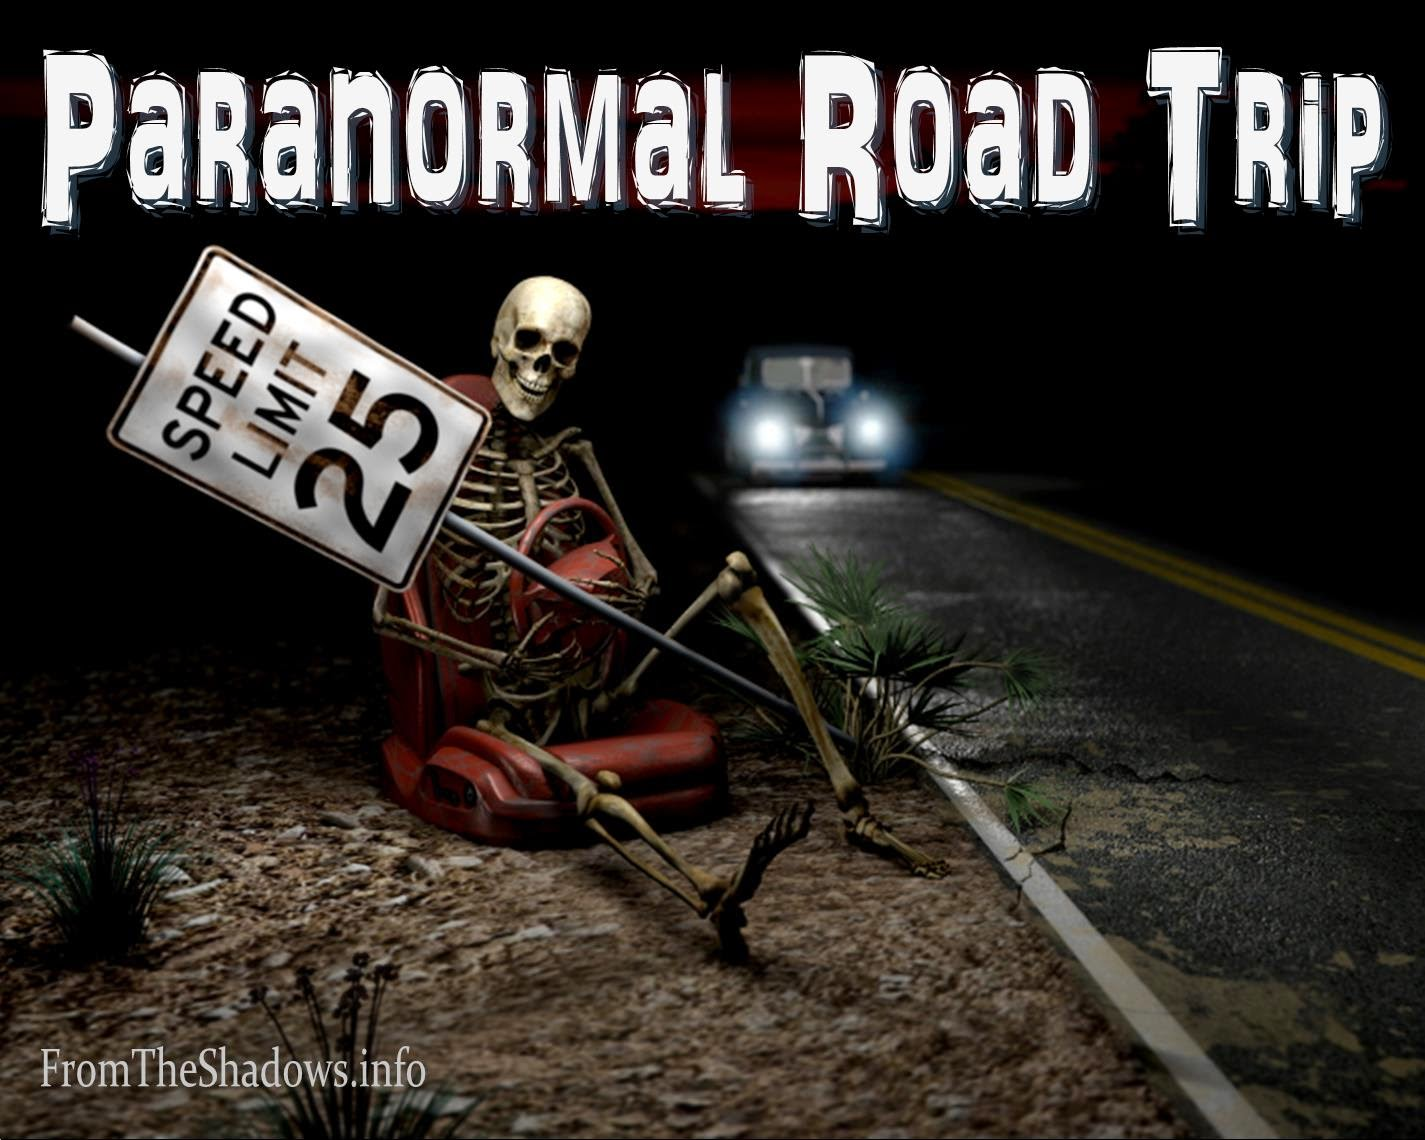 Paranormal Road Trip: Destination San Francisco with Celia Breslin